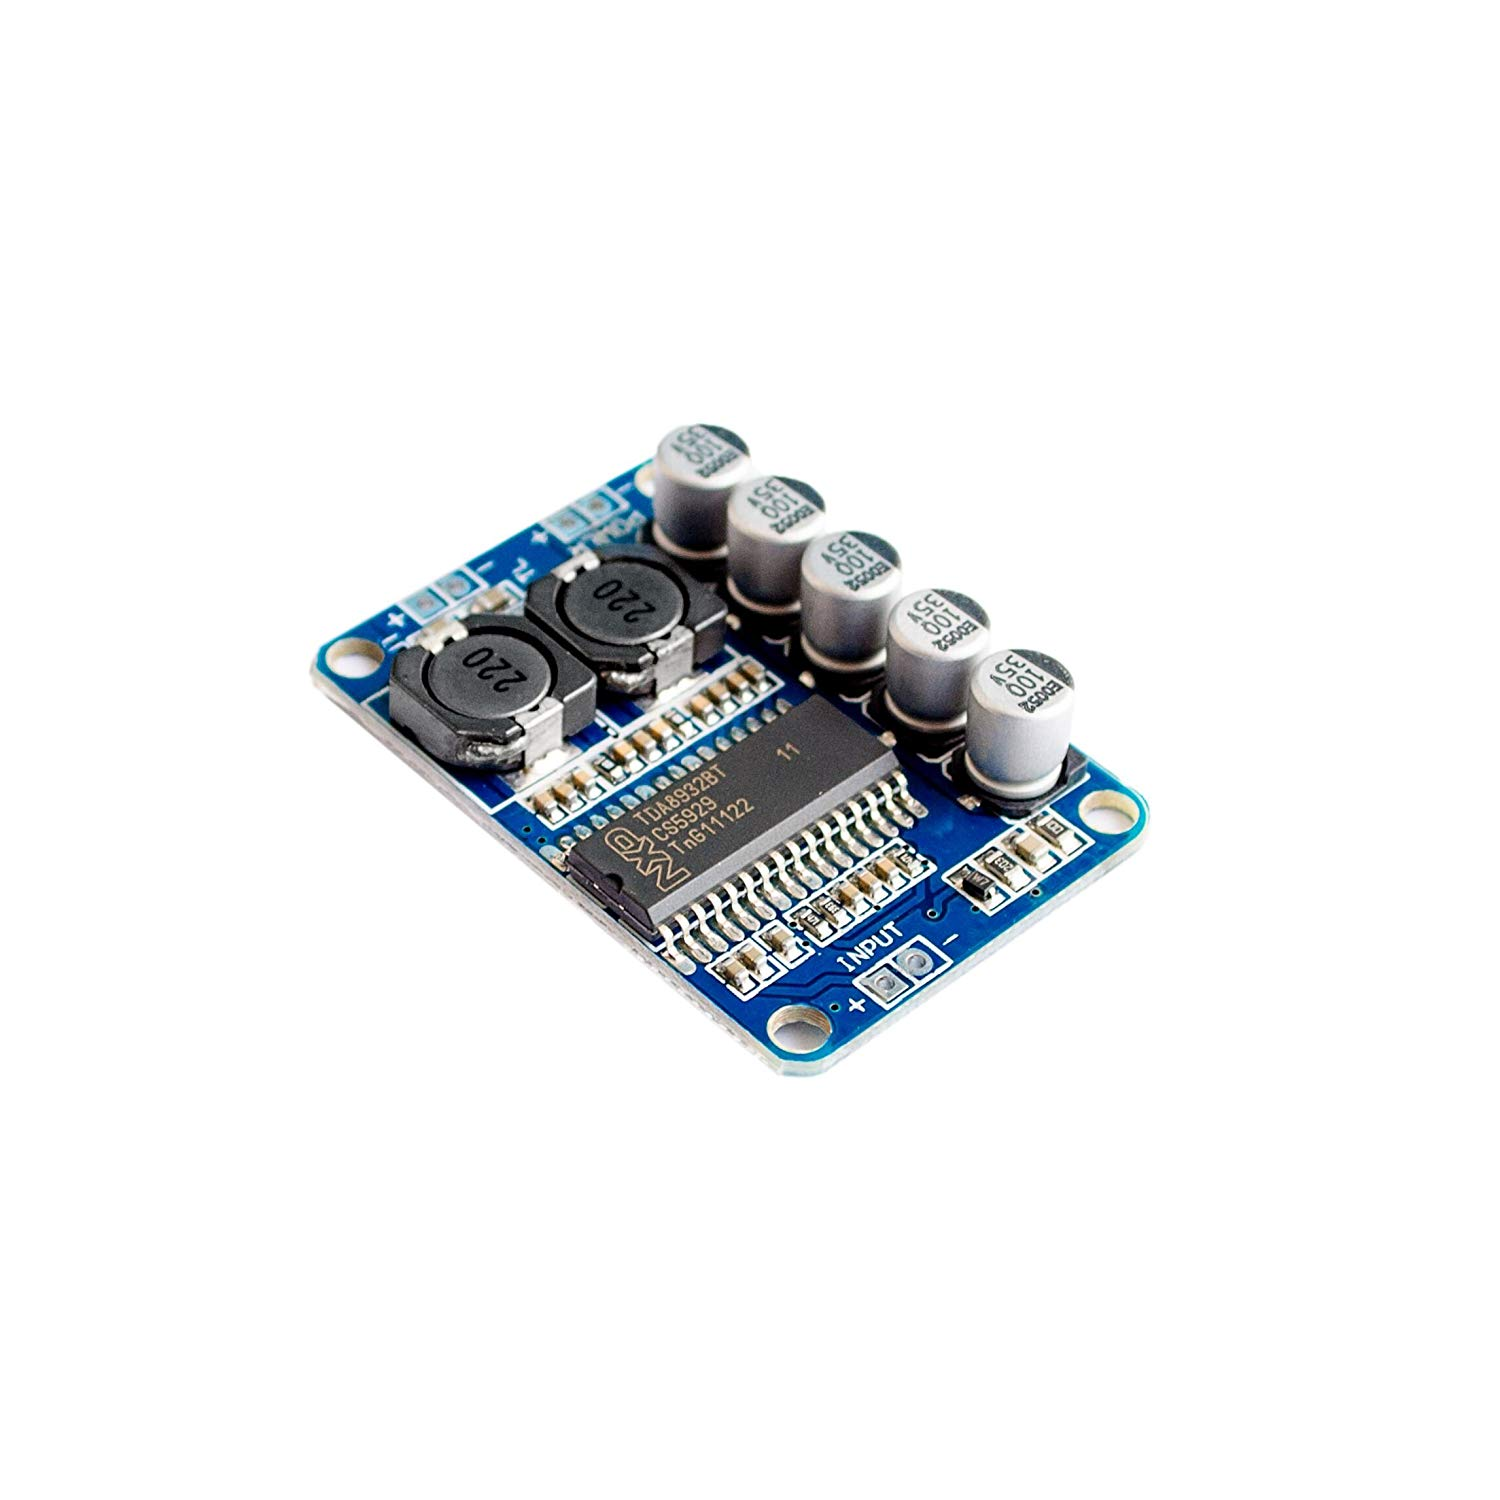 Mayata 10PCS/LOT Digital power amplifier board module 35w mono amplifier module High-power TDA8932 low power consumption